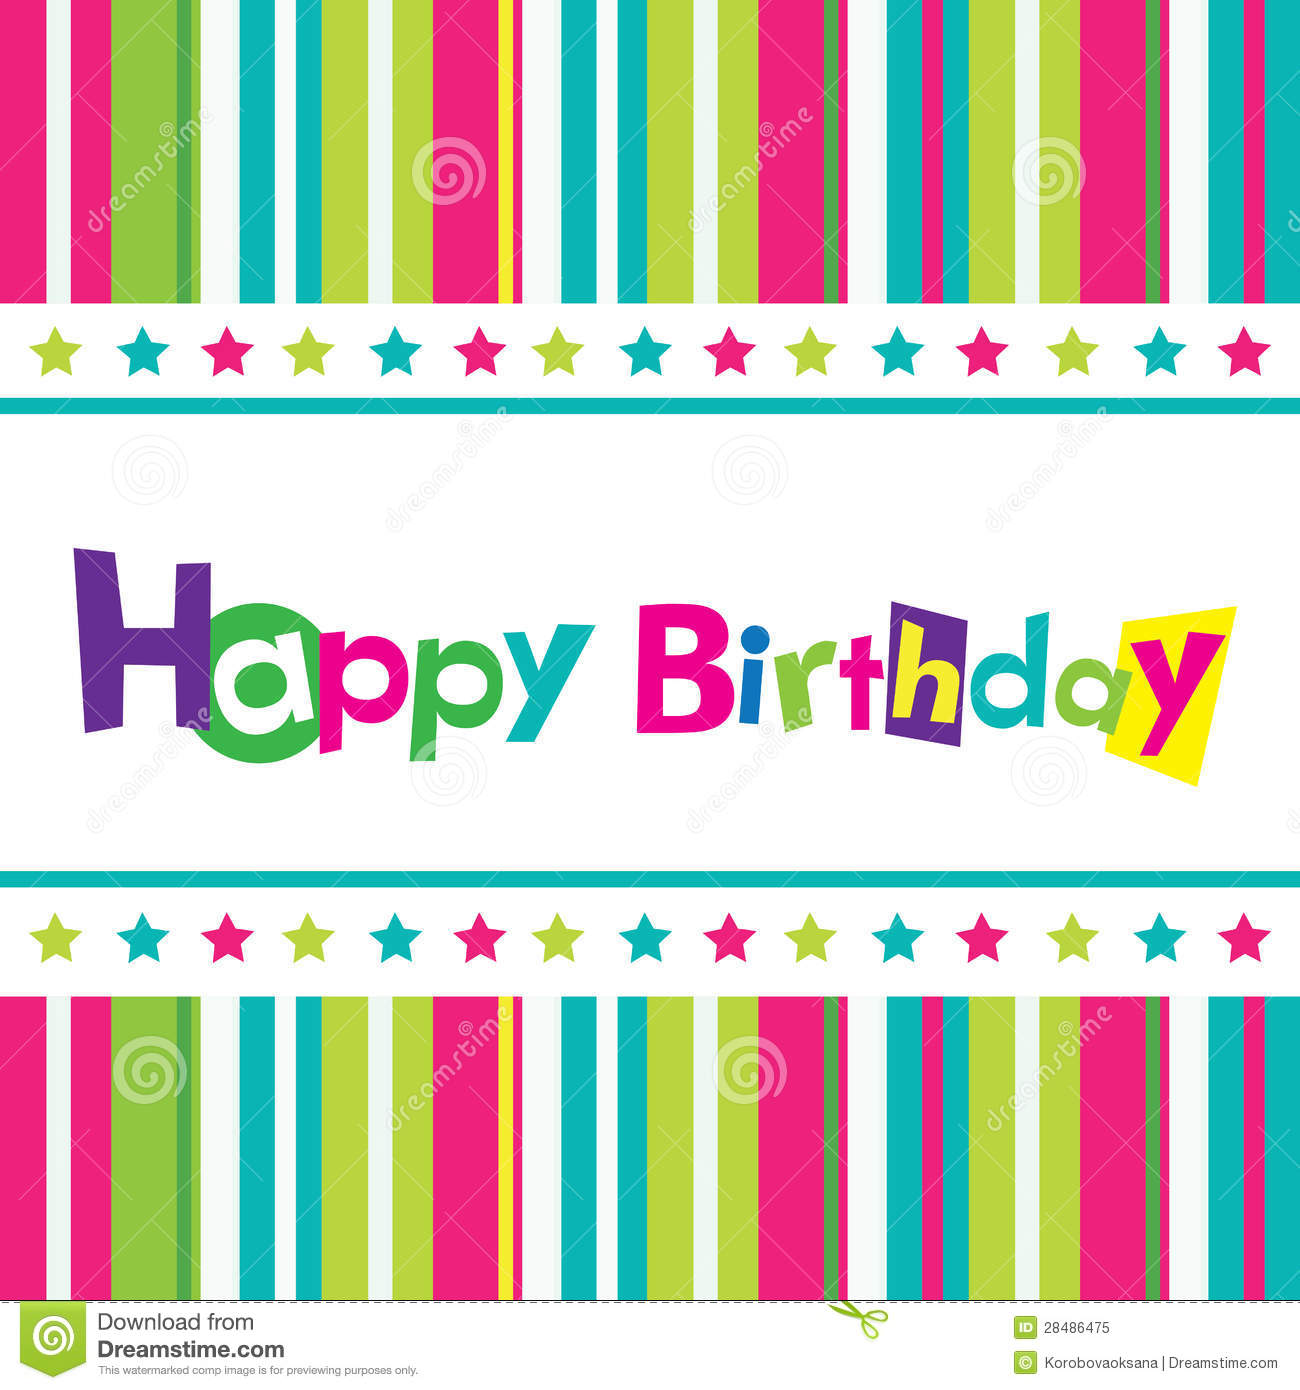 Birthday cards design free downloads image collections birthday vector happy birthday card stock vector illustration of birthday vector happy birthday card image decoration bookmarktalkfo bookmarktalkfo Image collections